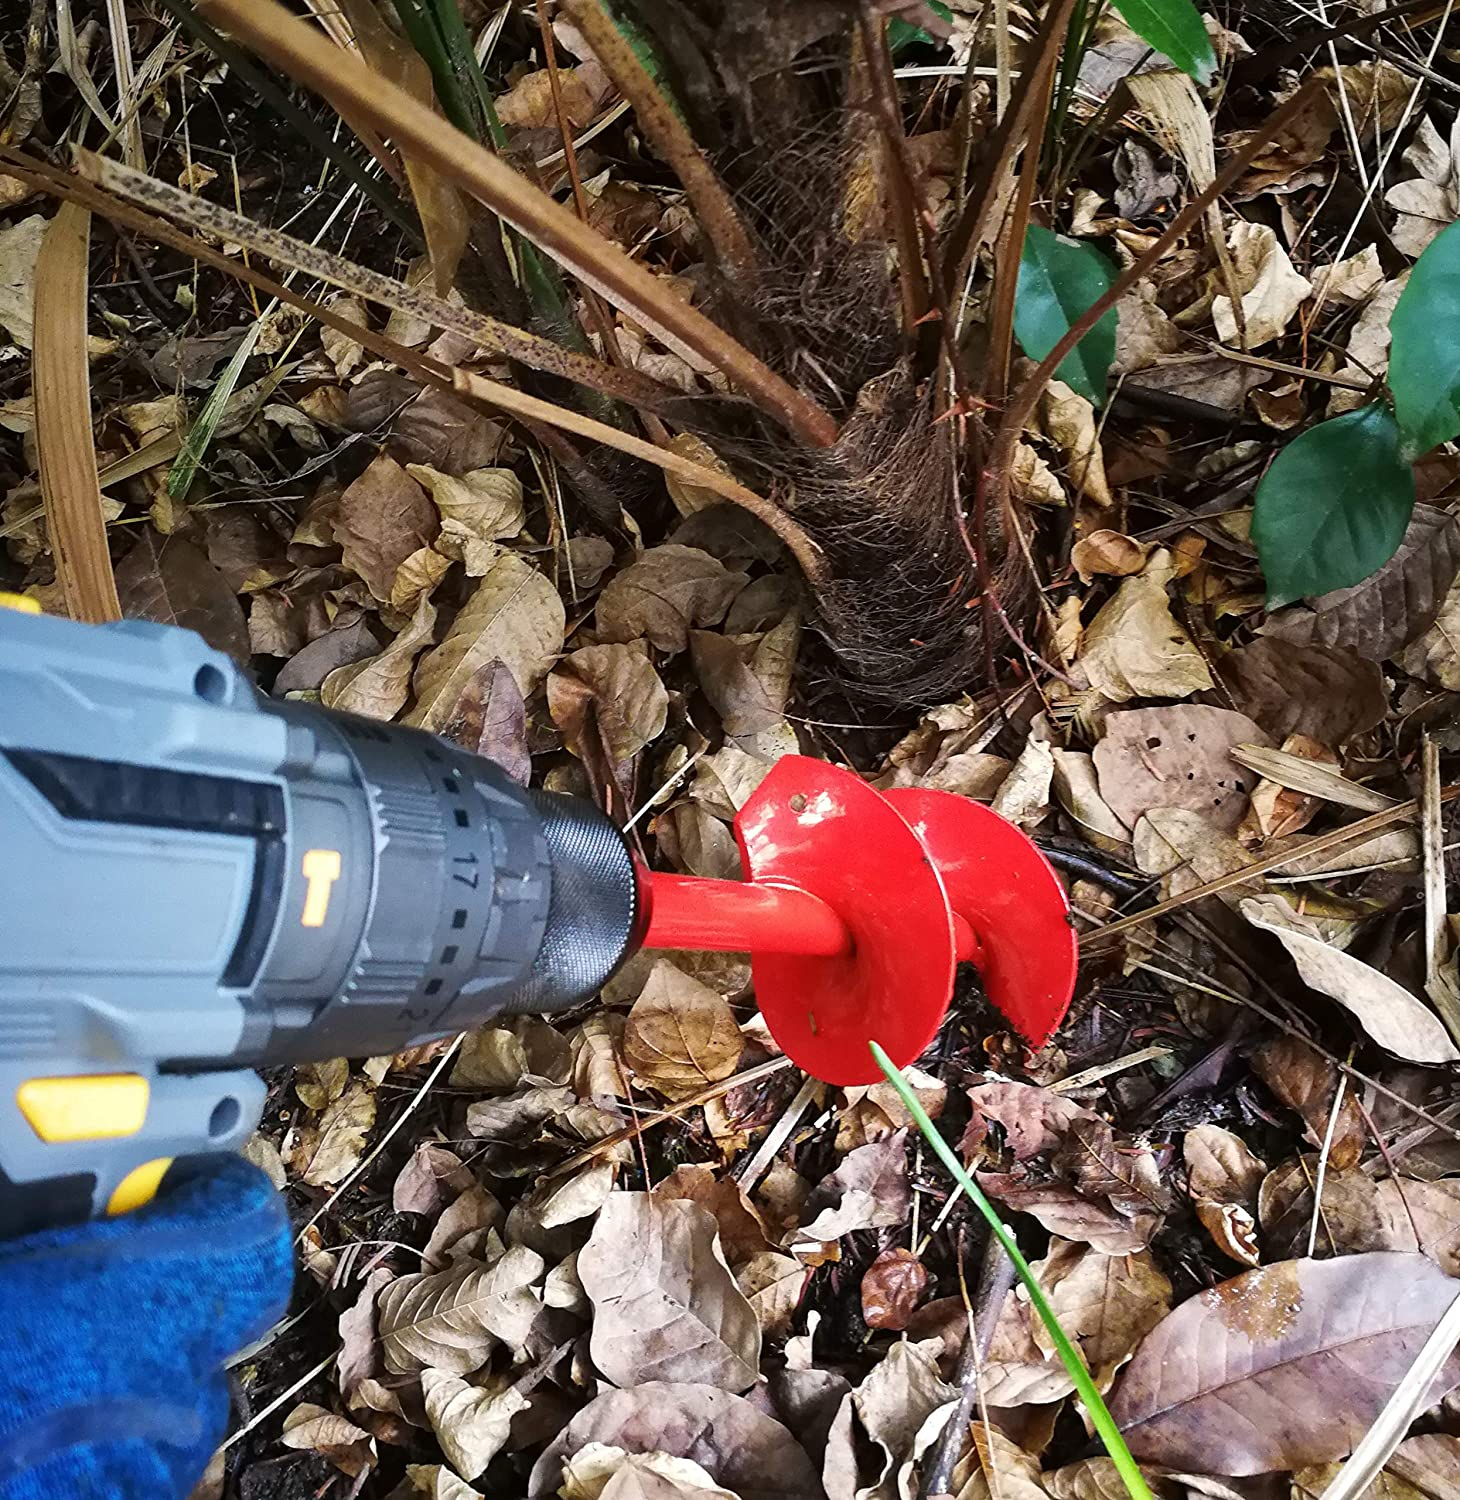 """Solid Carbon Steel STEAD /& FAST Bulb Auger 1.6/"""" x 9/"""" with /¼/"""" Hex Drive Garden Auger for Planting Bulbs and Grass Bedding Hole Digging Red"""